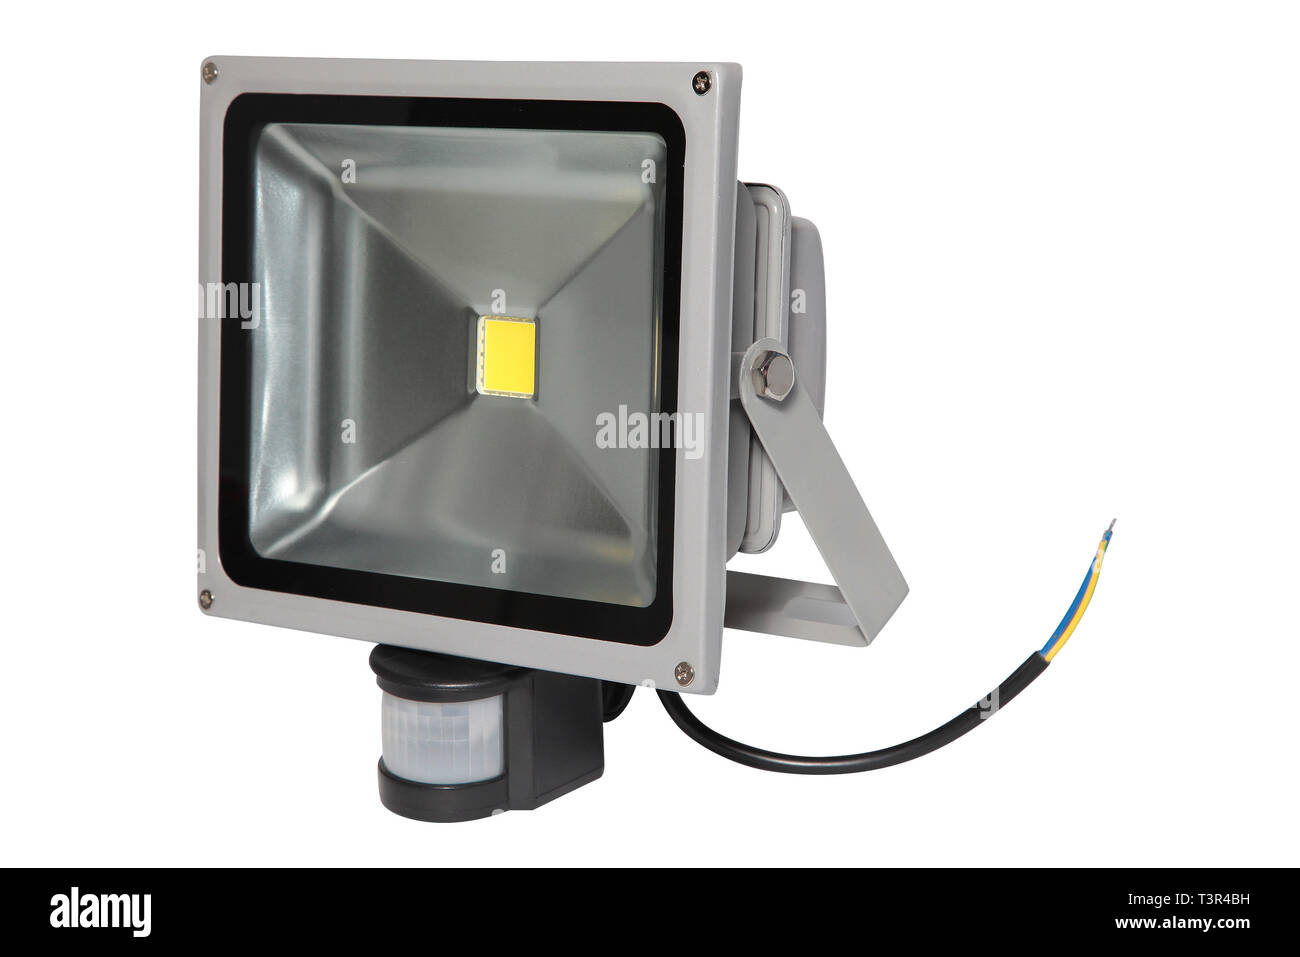 Lighting equipment. Gray halogen lantern with motion detector isolated on white background - Stock Image